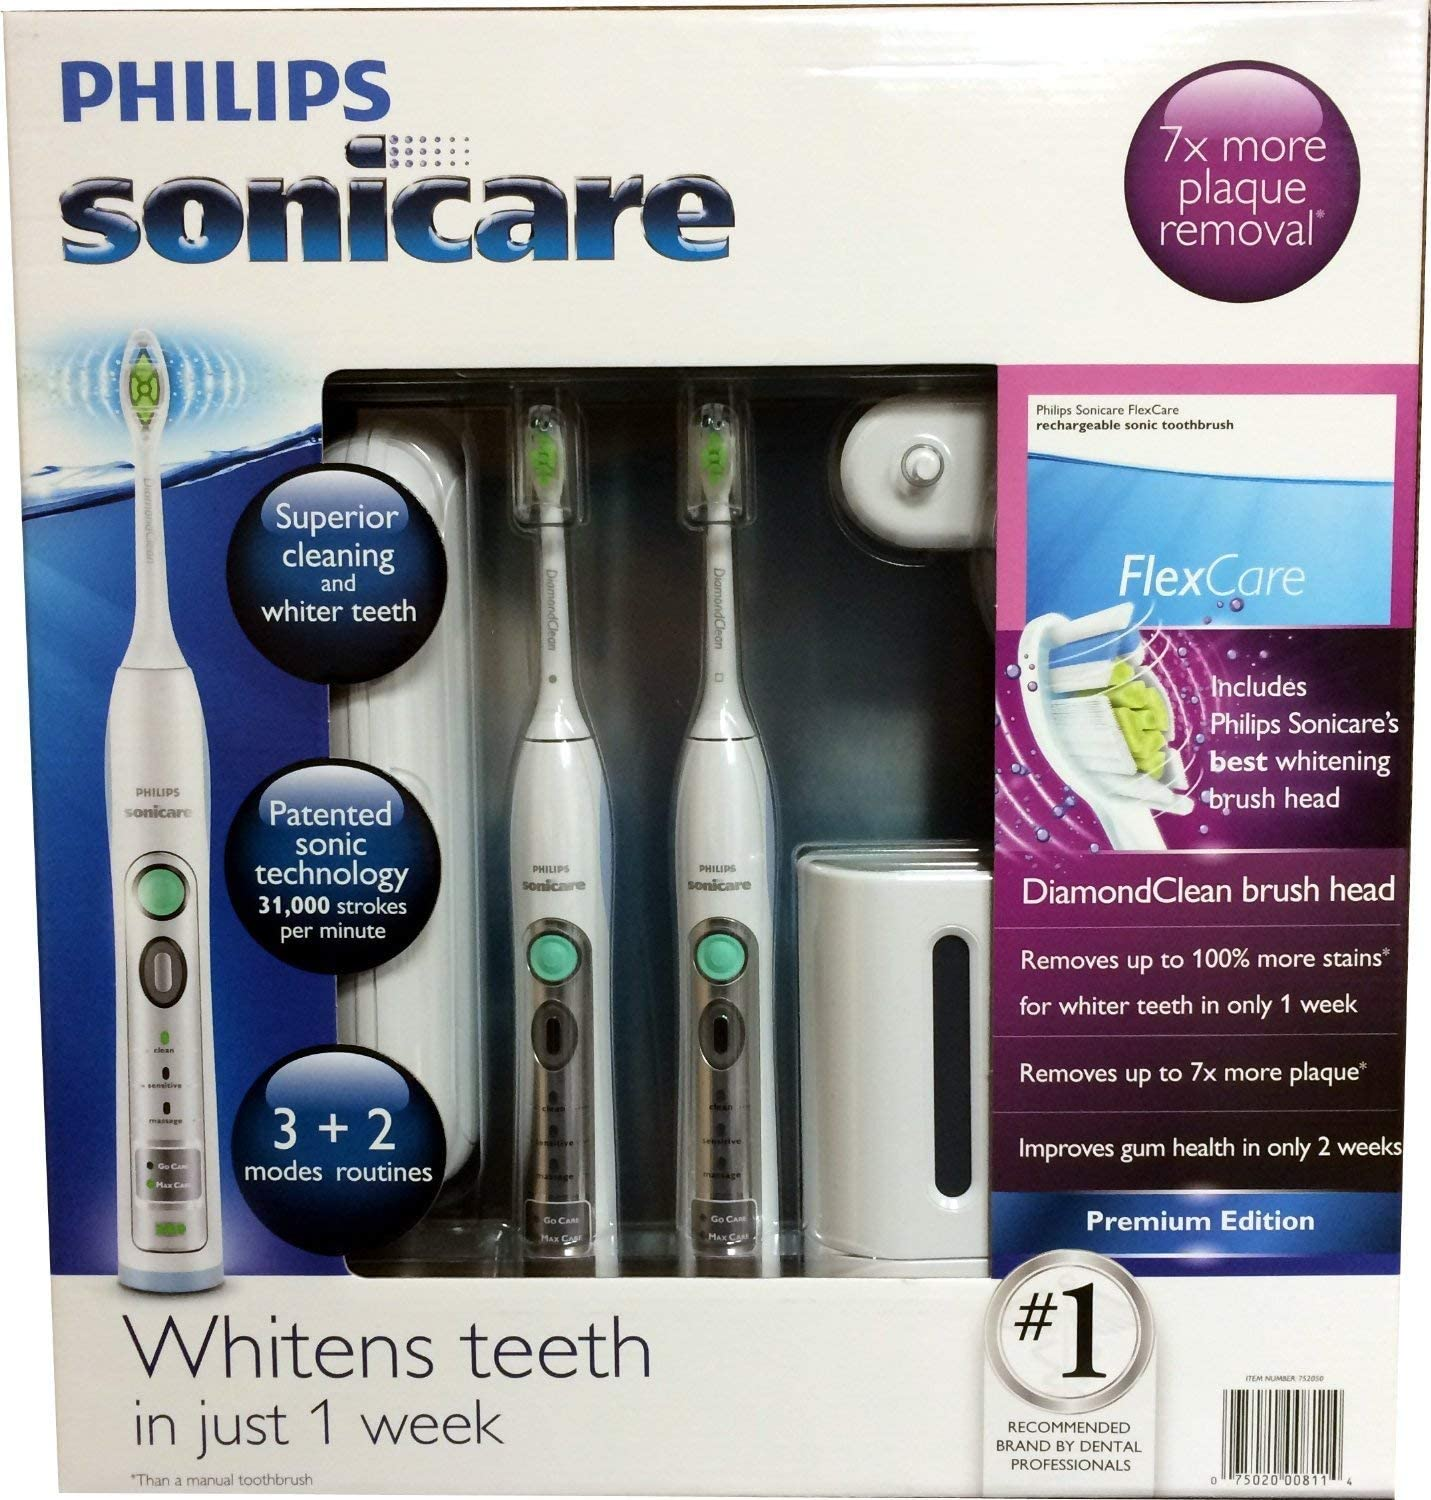 Philips Sonicare Flexcare Rechargeable Sonic Toothbrush Premium Edition 2 pack With UV Sanitizer